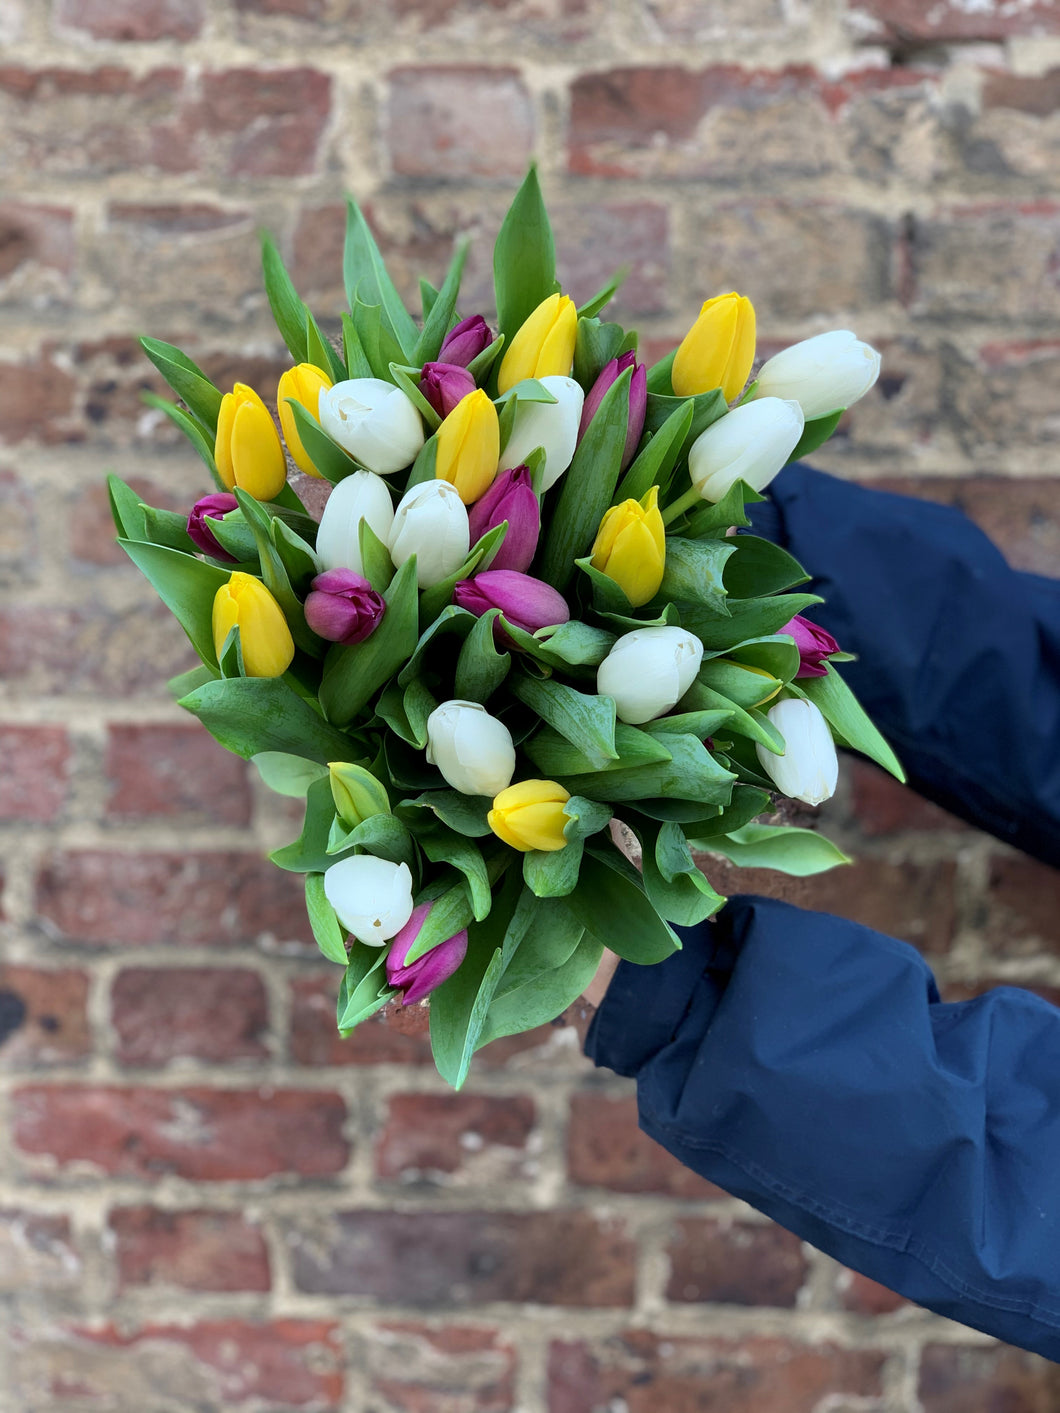 Our pick of the Tulips